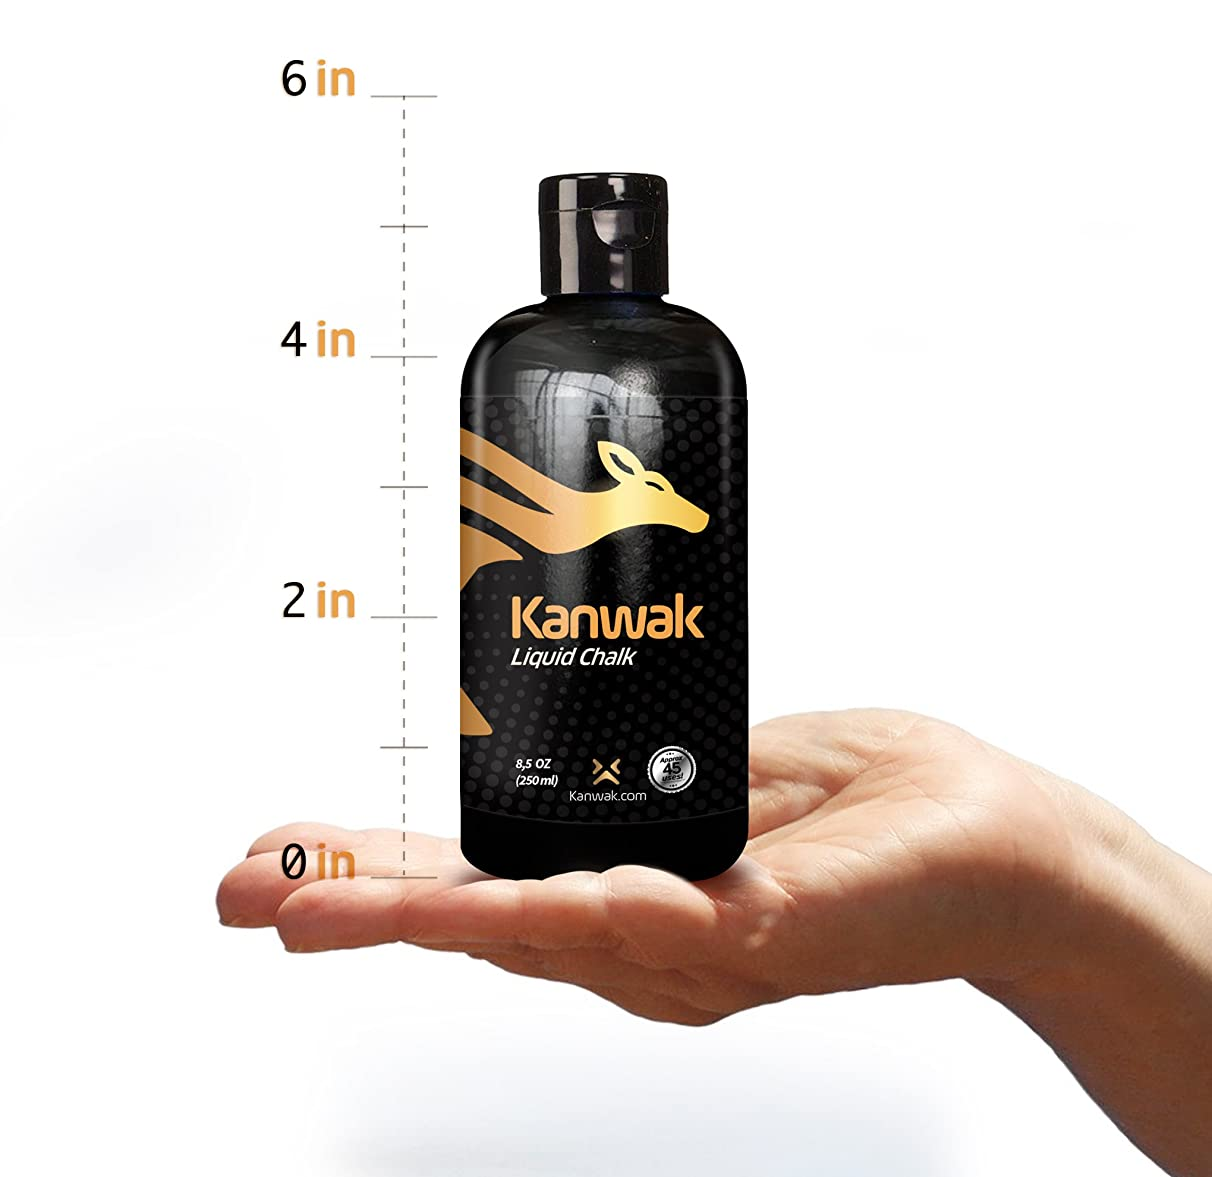 Kanwak Liquid Chalk Grip Hand Grip for Gym, Weightlifting, Climbing, Bouldering, Calisthenics, Gymnastics, Gym - Dries in Seconds - Dust Free and No Mess - Portable and Compact Chalk in a Bottle of 50/250 ml